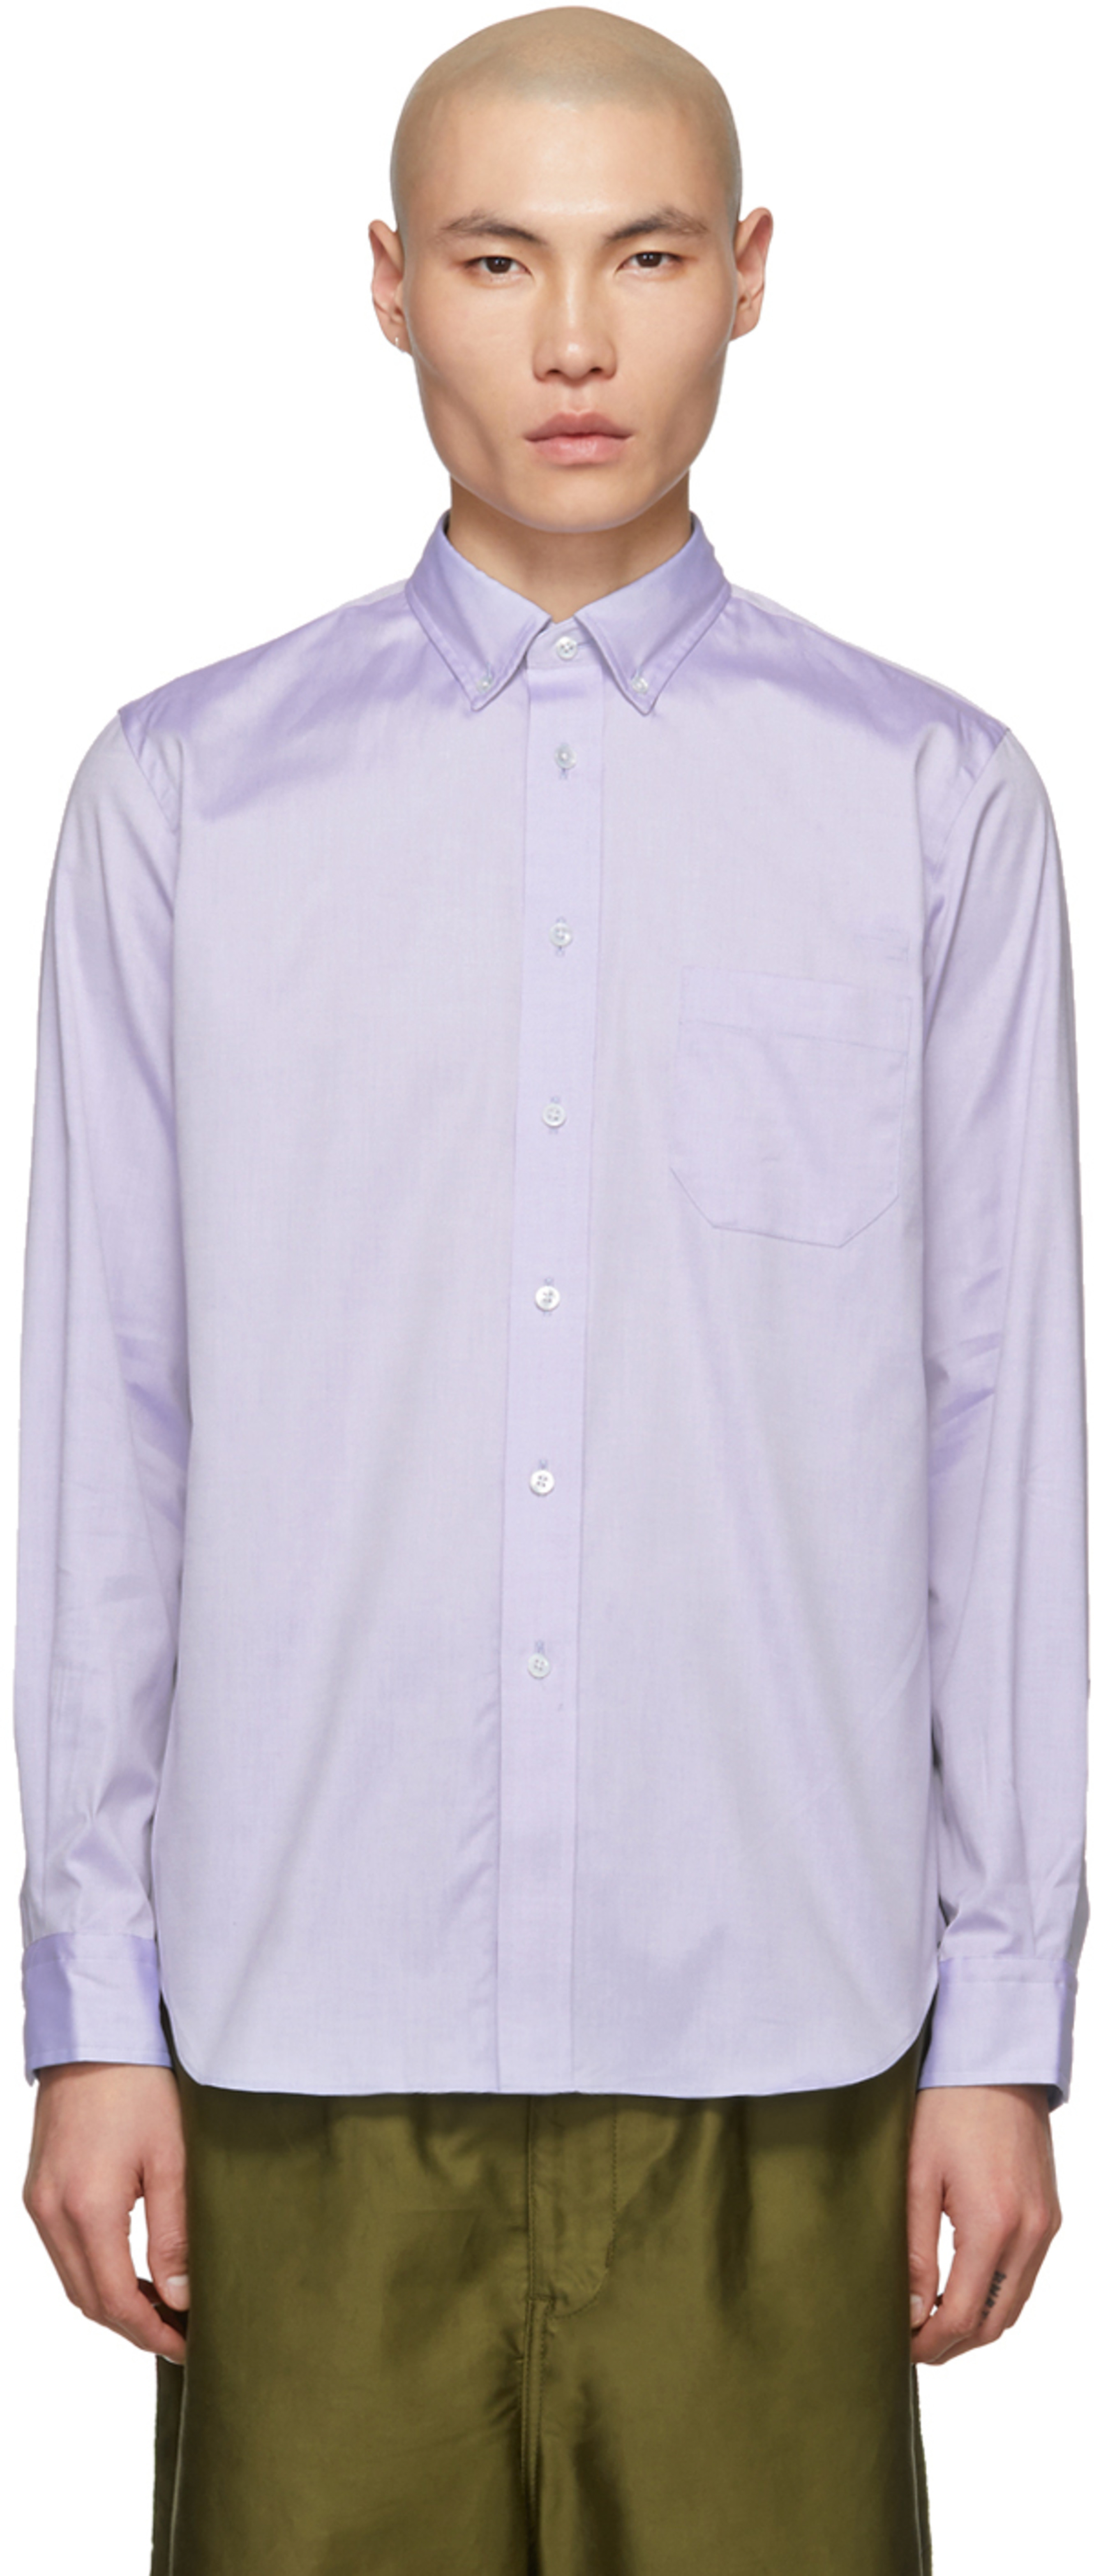 9c54714870ba Designer shirts for Men   SSENSE